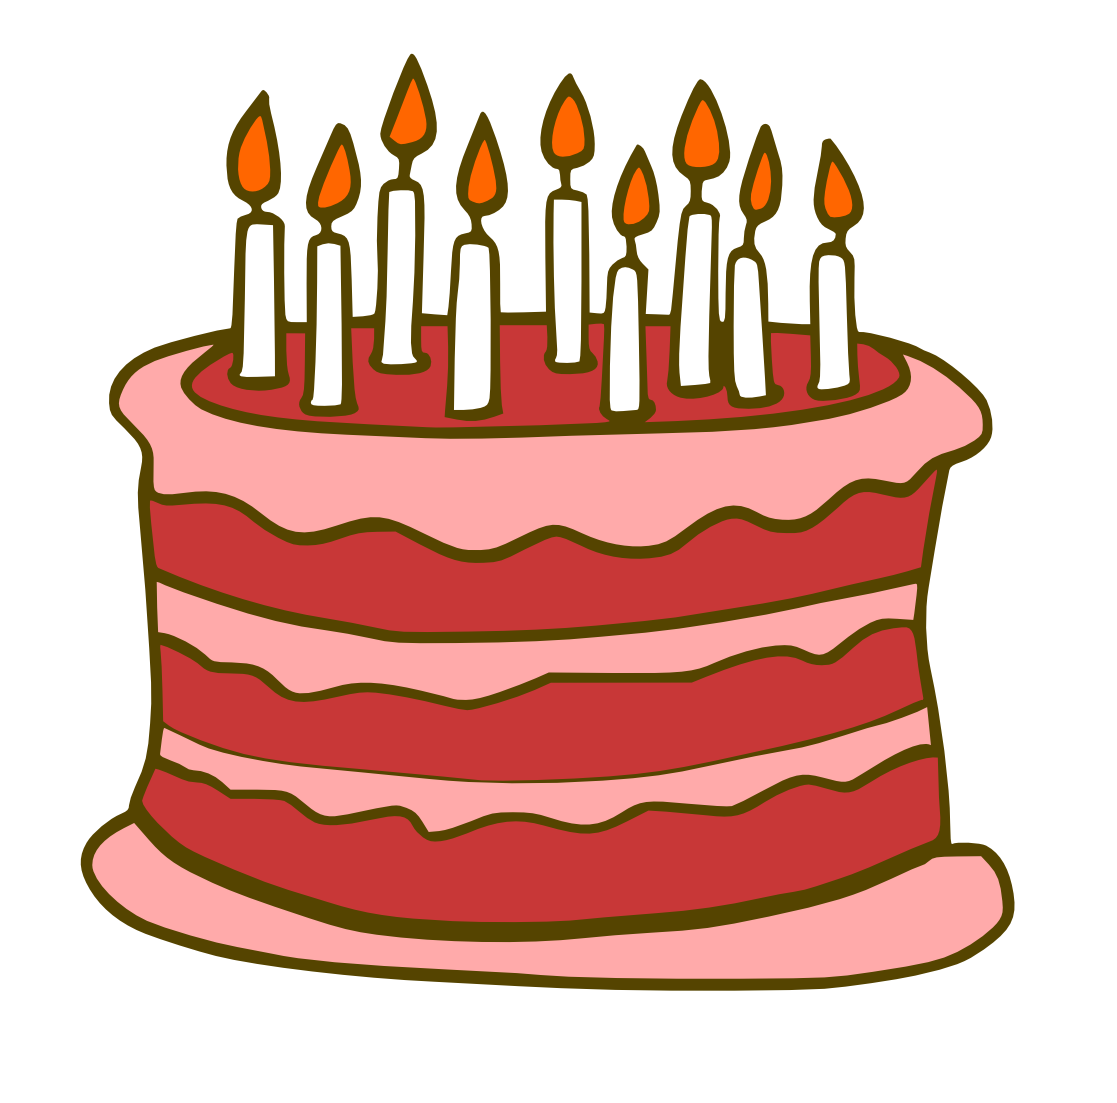 Free Pictures Of Cartoon Cakes, Download Free Clip Art, Free.